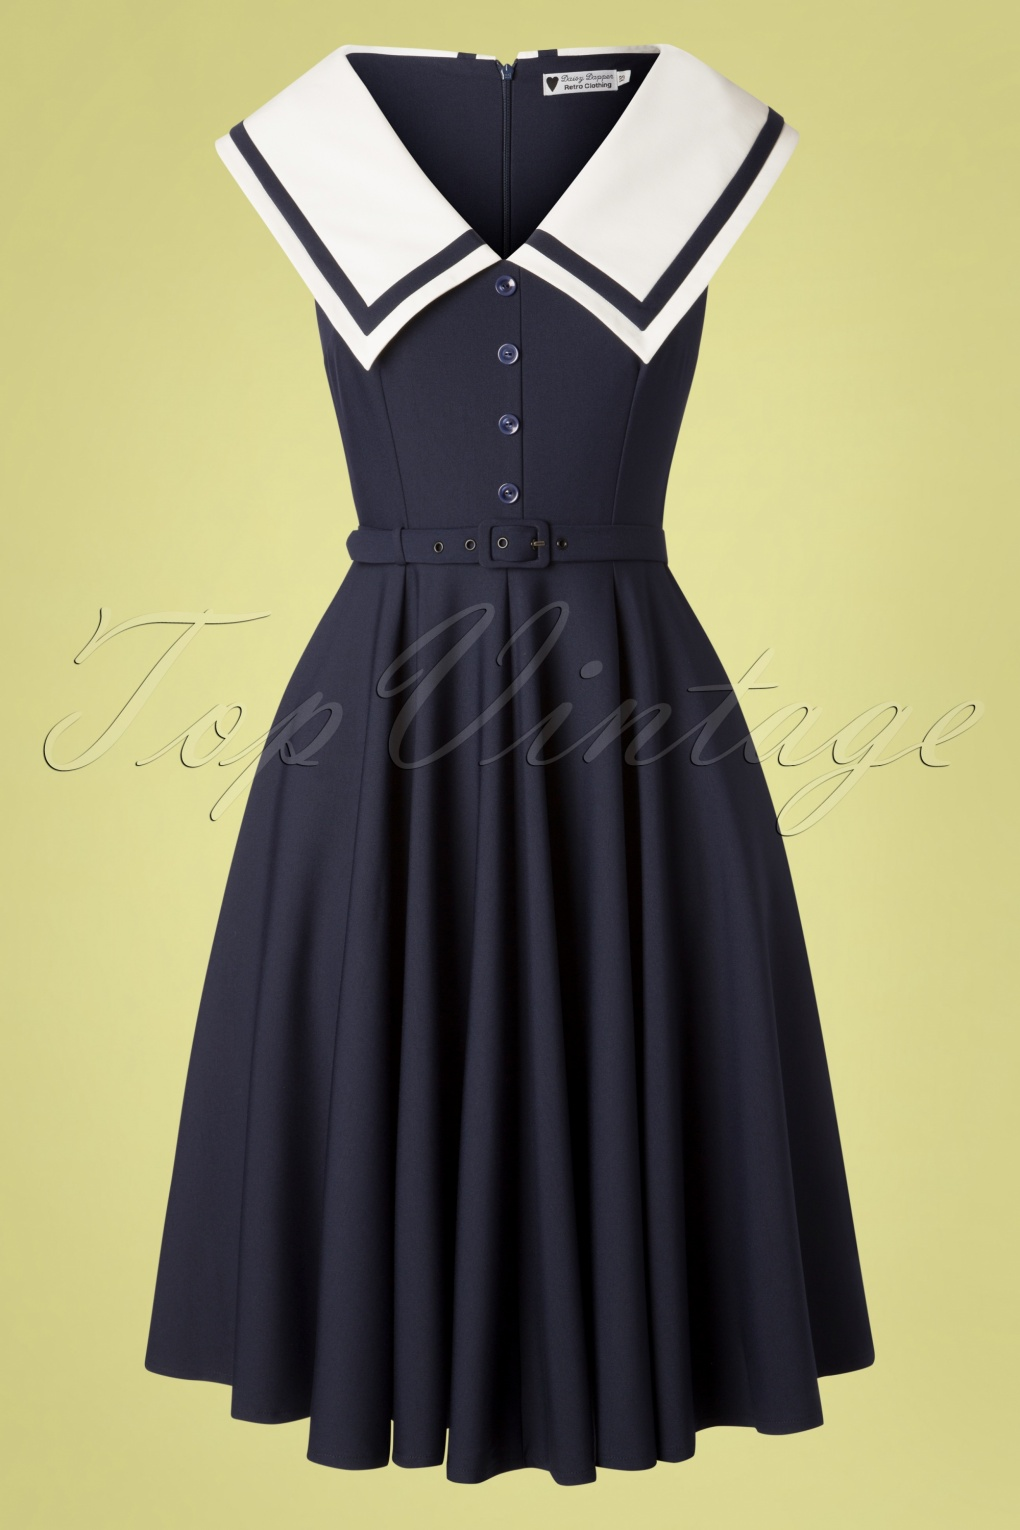 Vintage Cruise Outfits, Vacation Clothing 50s June Swing Dress in Navy �127.35 AT vintagedancer.com